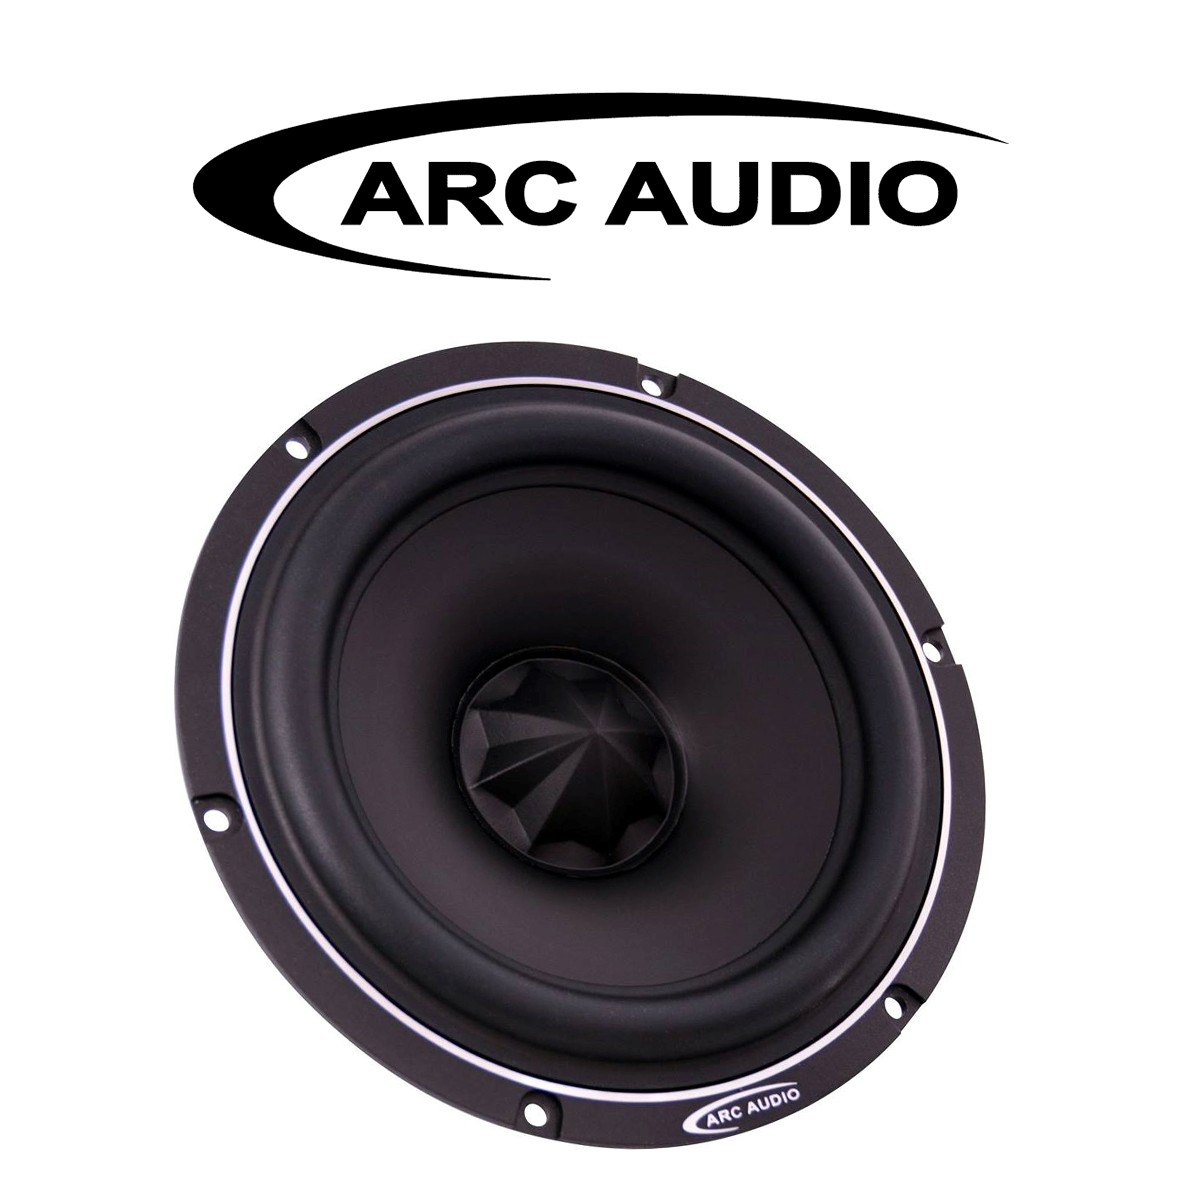 ARC AUDIO RS 6.0 - MIDBASS 6.5 INCHI